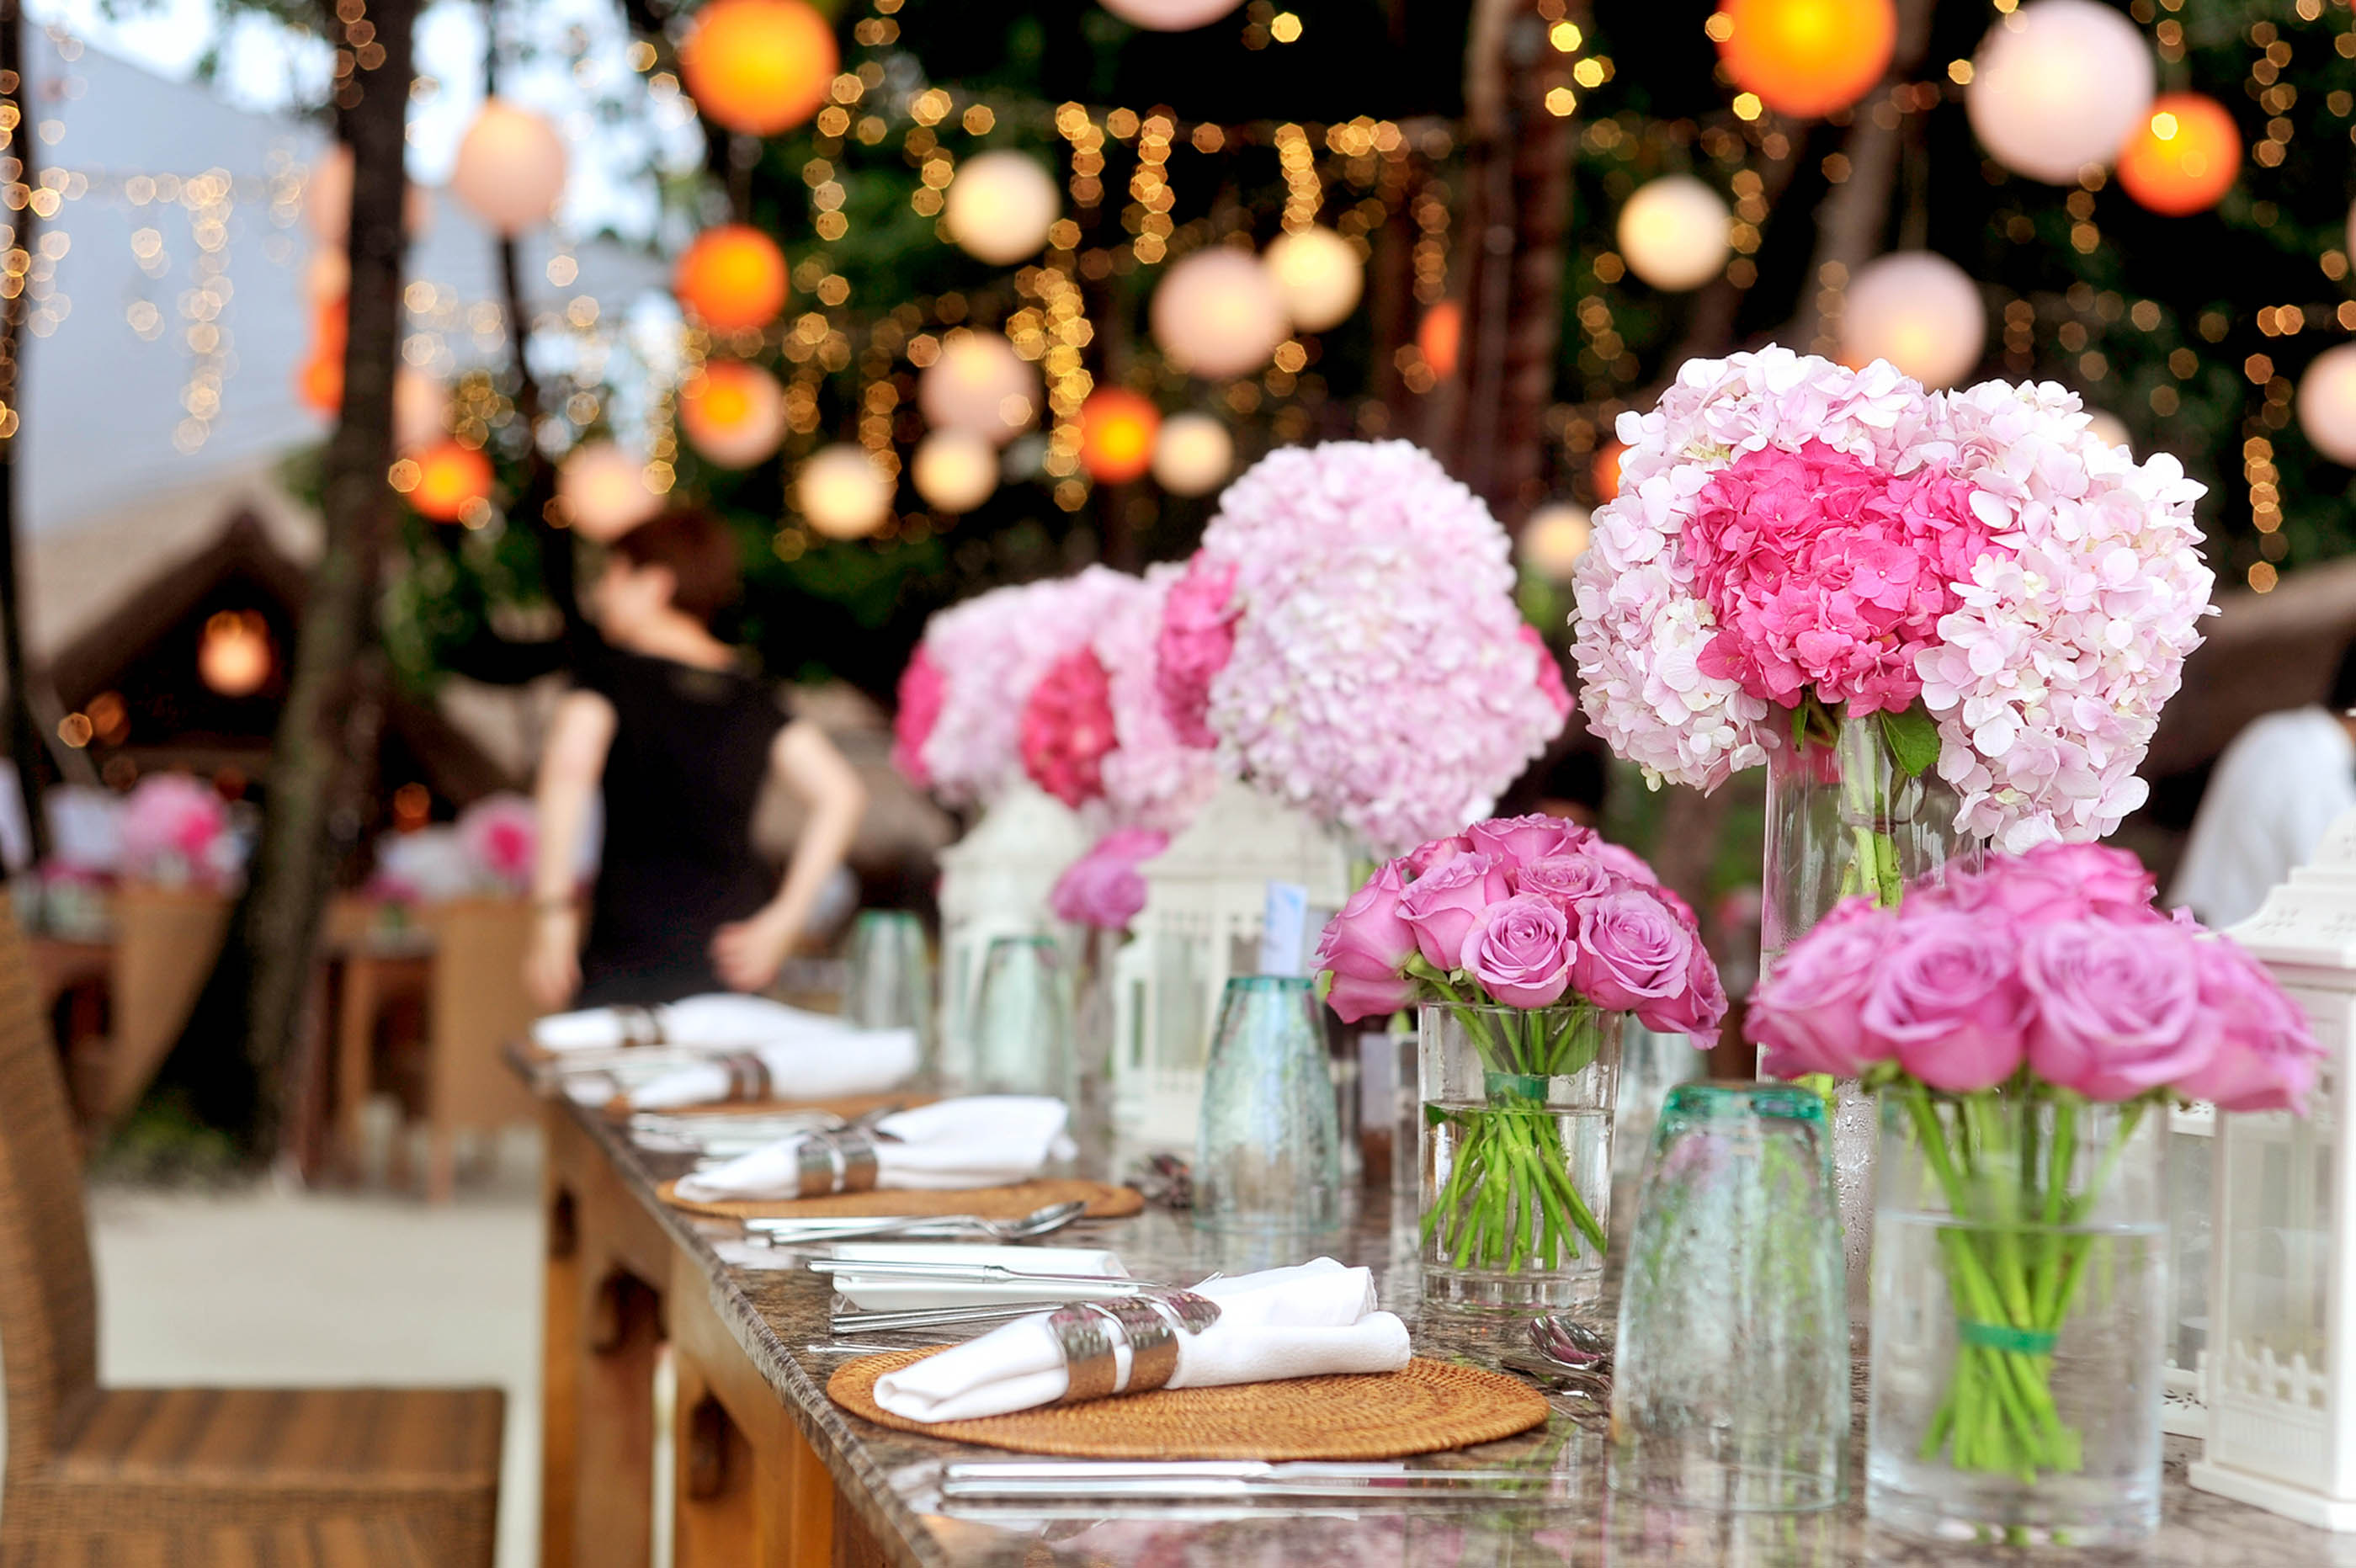 How To Make Those Wedding Reception Tables Extra Special